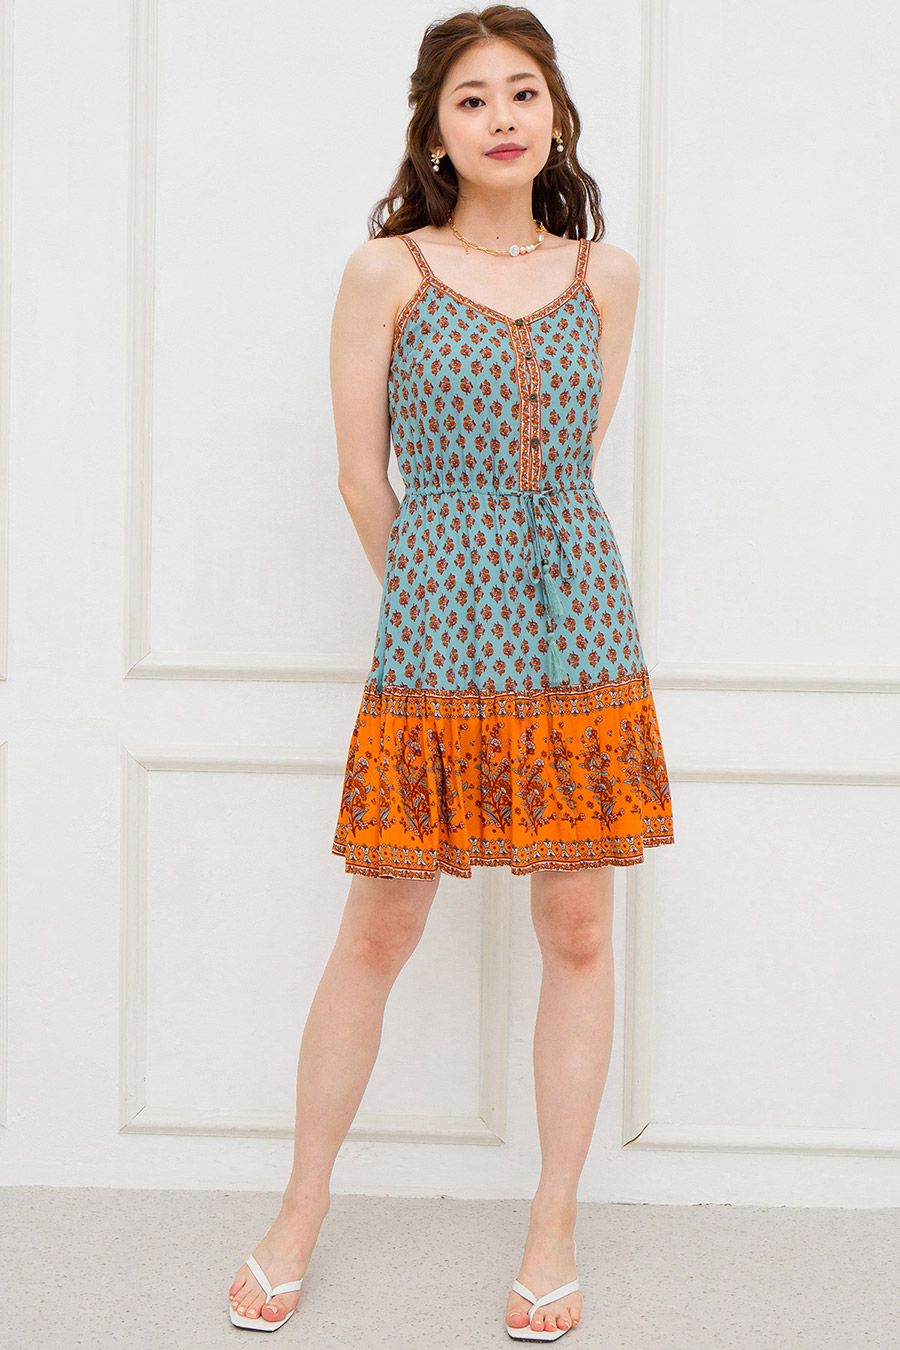 ESME DRESS - BAHAMAS